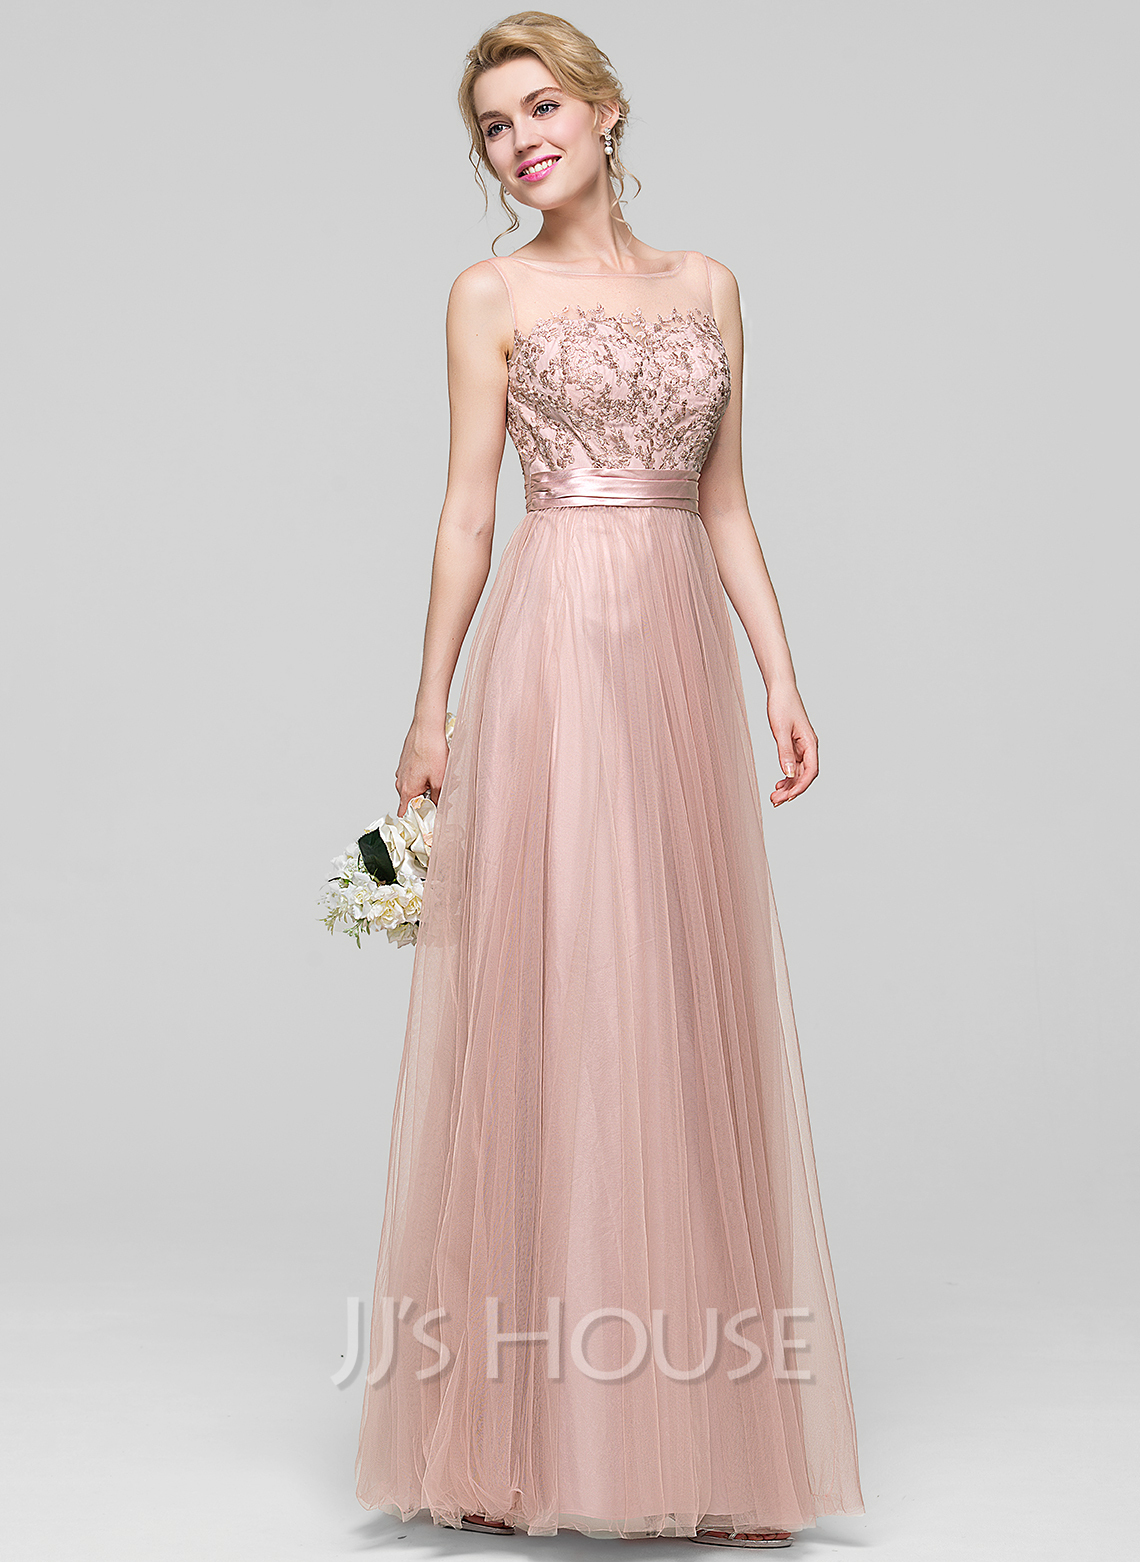 61b93789745 A-Line Princess Scoop Neck Floor-Length Tulle Bridesmaid Dress With Ruffle.  Loading zoom